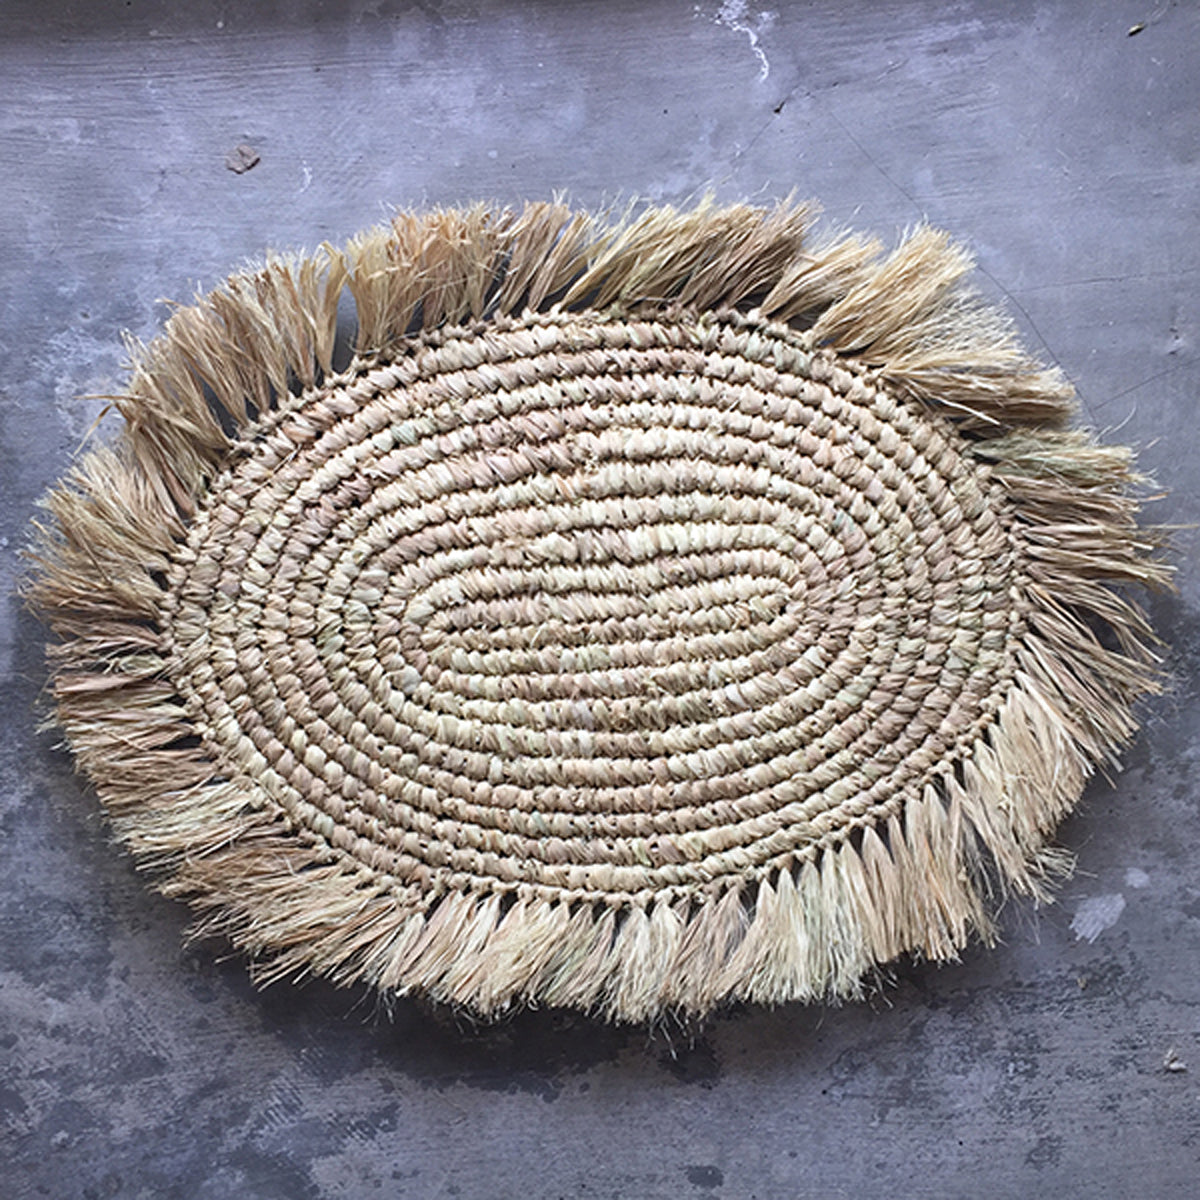 SHL187-2 NATURAL OVAL RAFFIA PLACEMAT